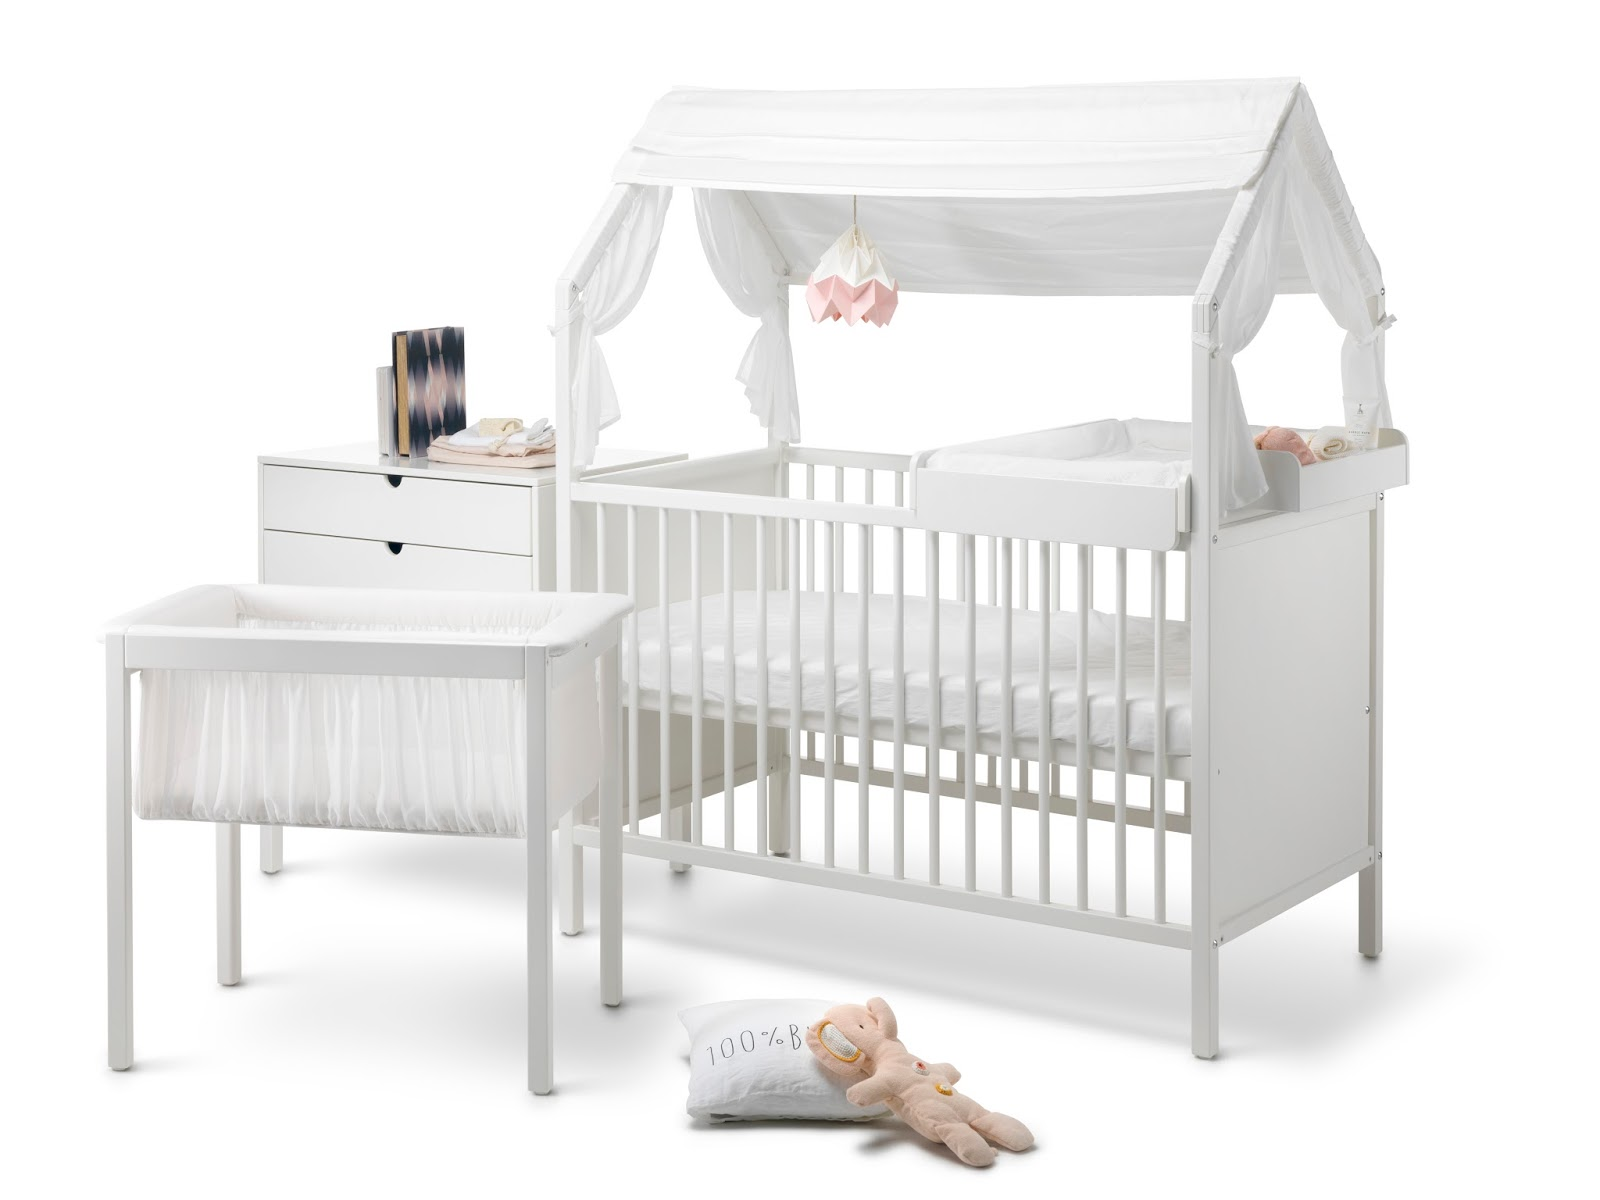 Preparing For Your Baby S Arrival While Designing Dream Nursery Is An Exciting Time And Whether You Ve Got Lots Of E Or Little To Spare